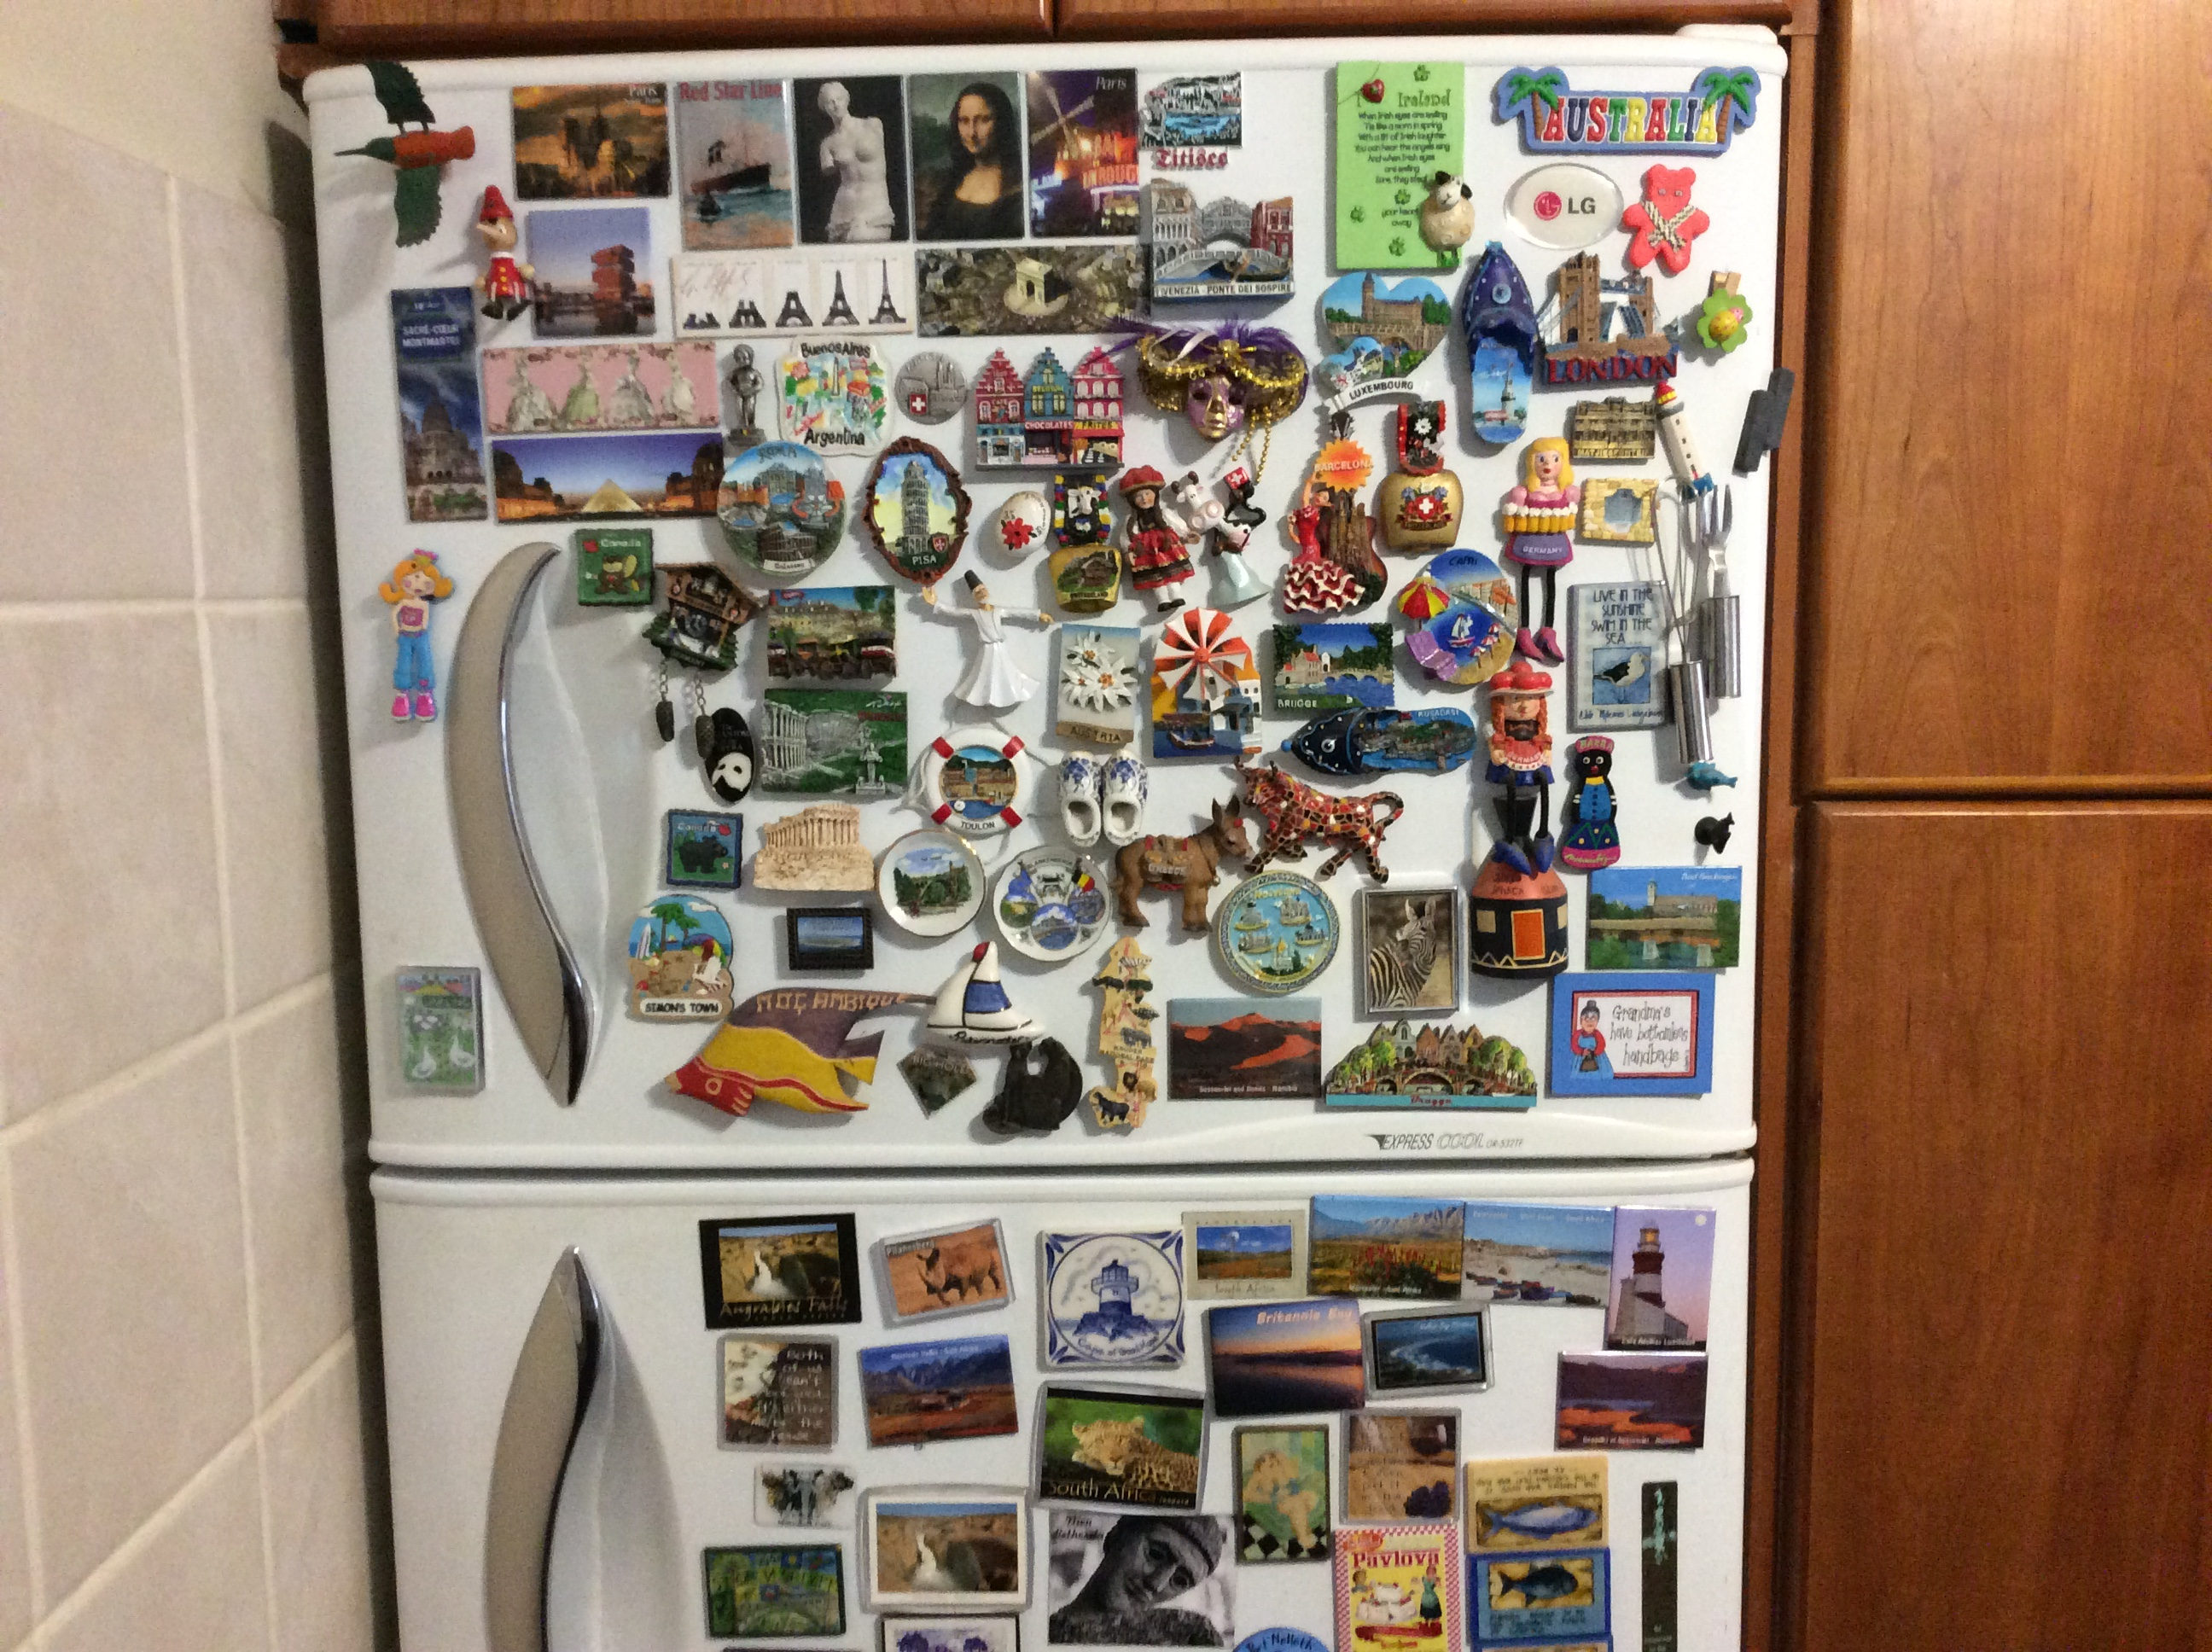 Fridge ornate with magnets